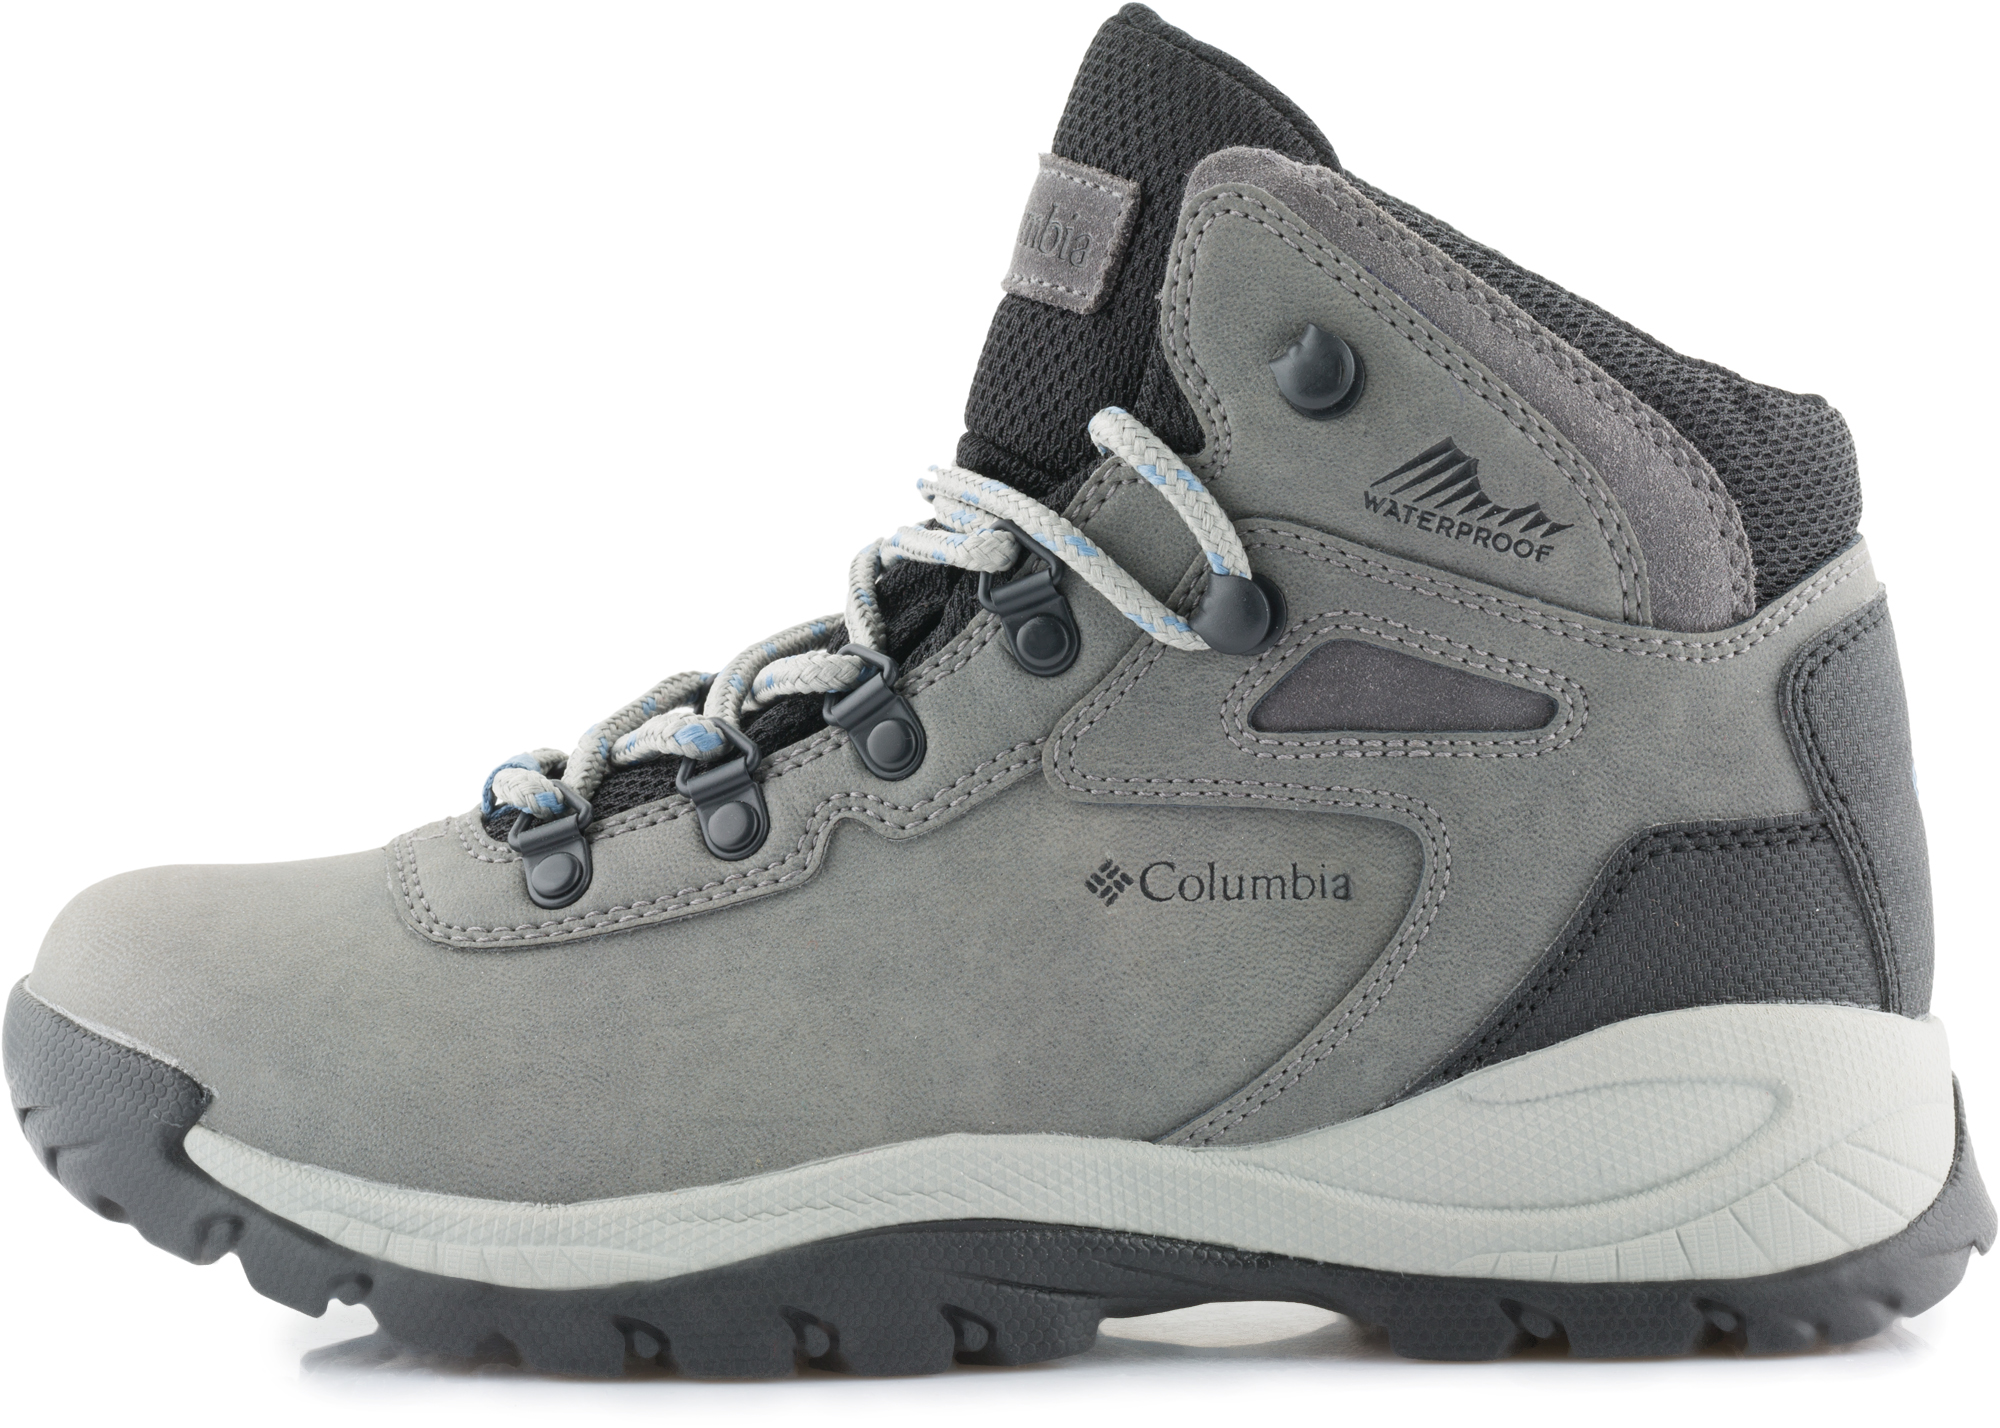 Columbia Ботинки женские Columbia Newton Ridge Plus, размер 40 columbia брюки женские columbia silver ridge pull on